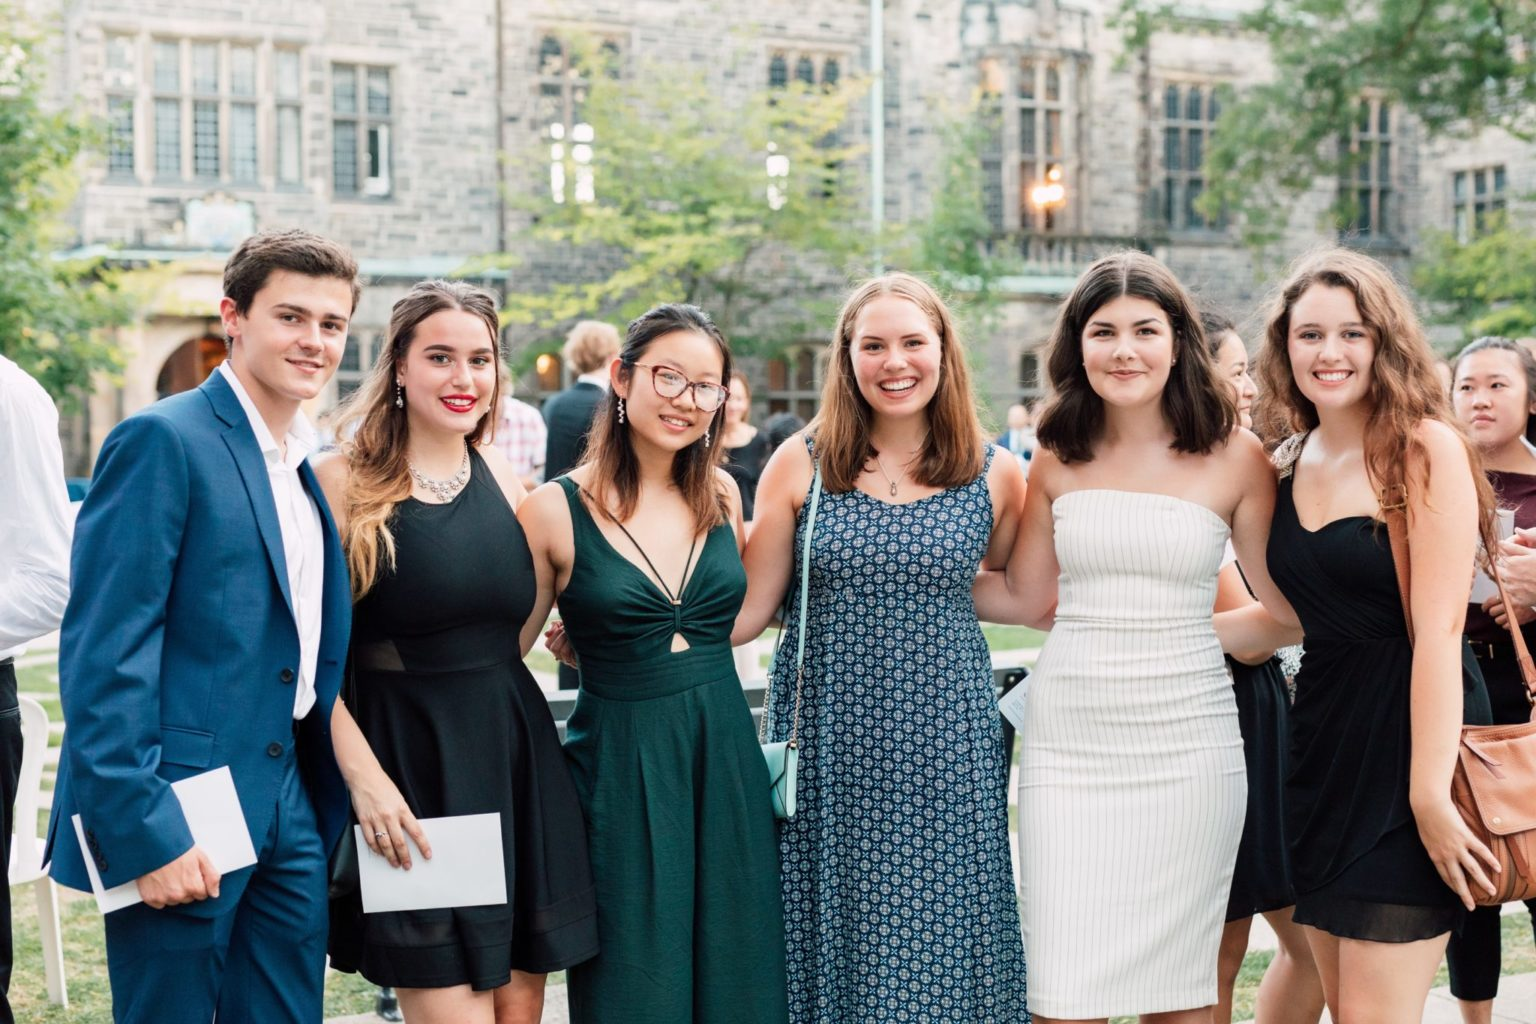 Trinity College Students from the Class of 2022 in the Quad Prior to Matriculation